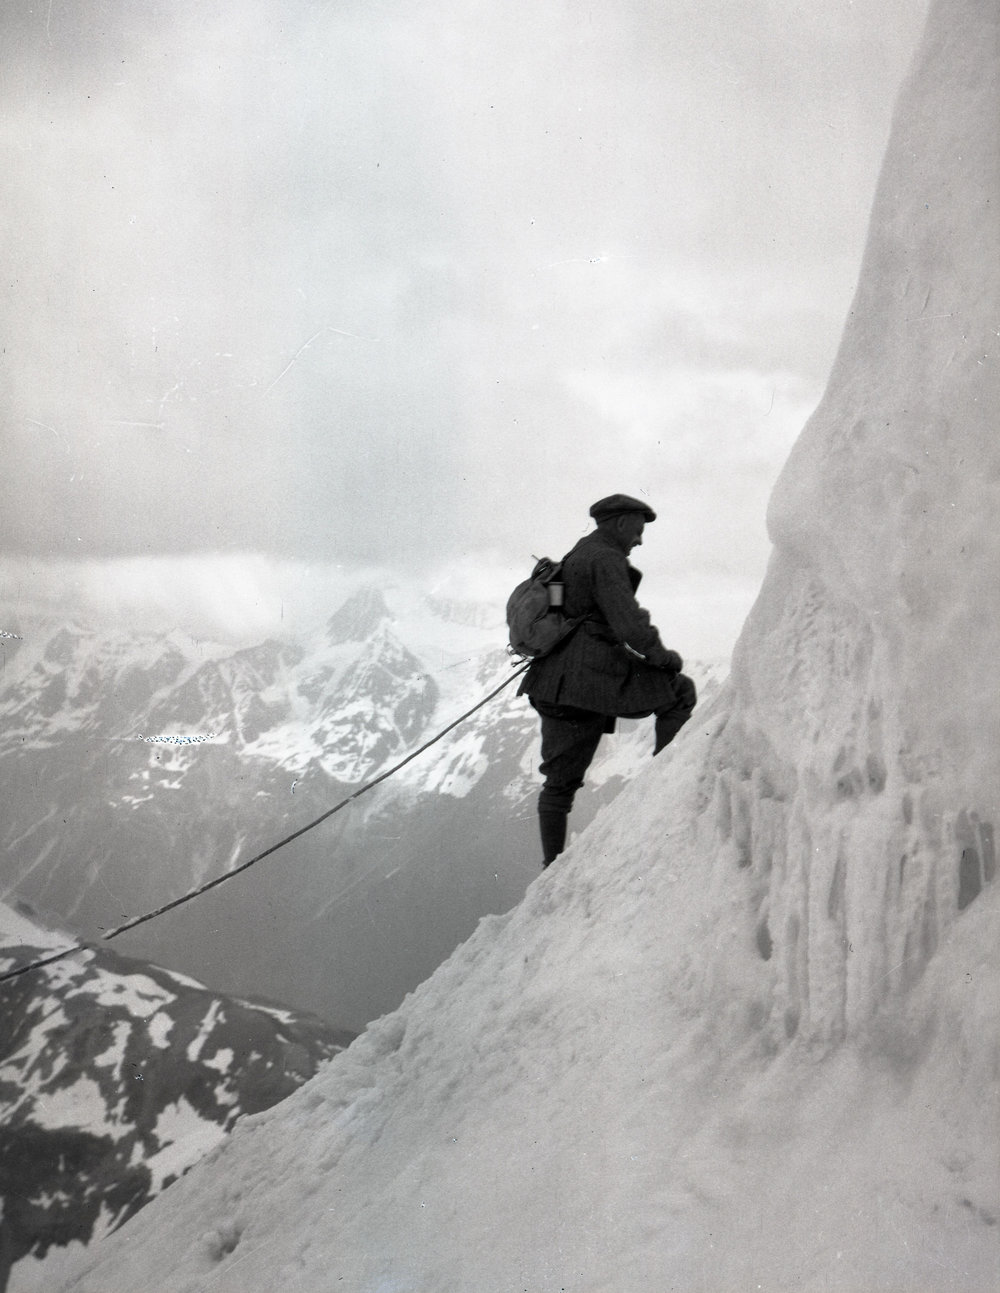 A climber in the Alps